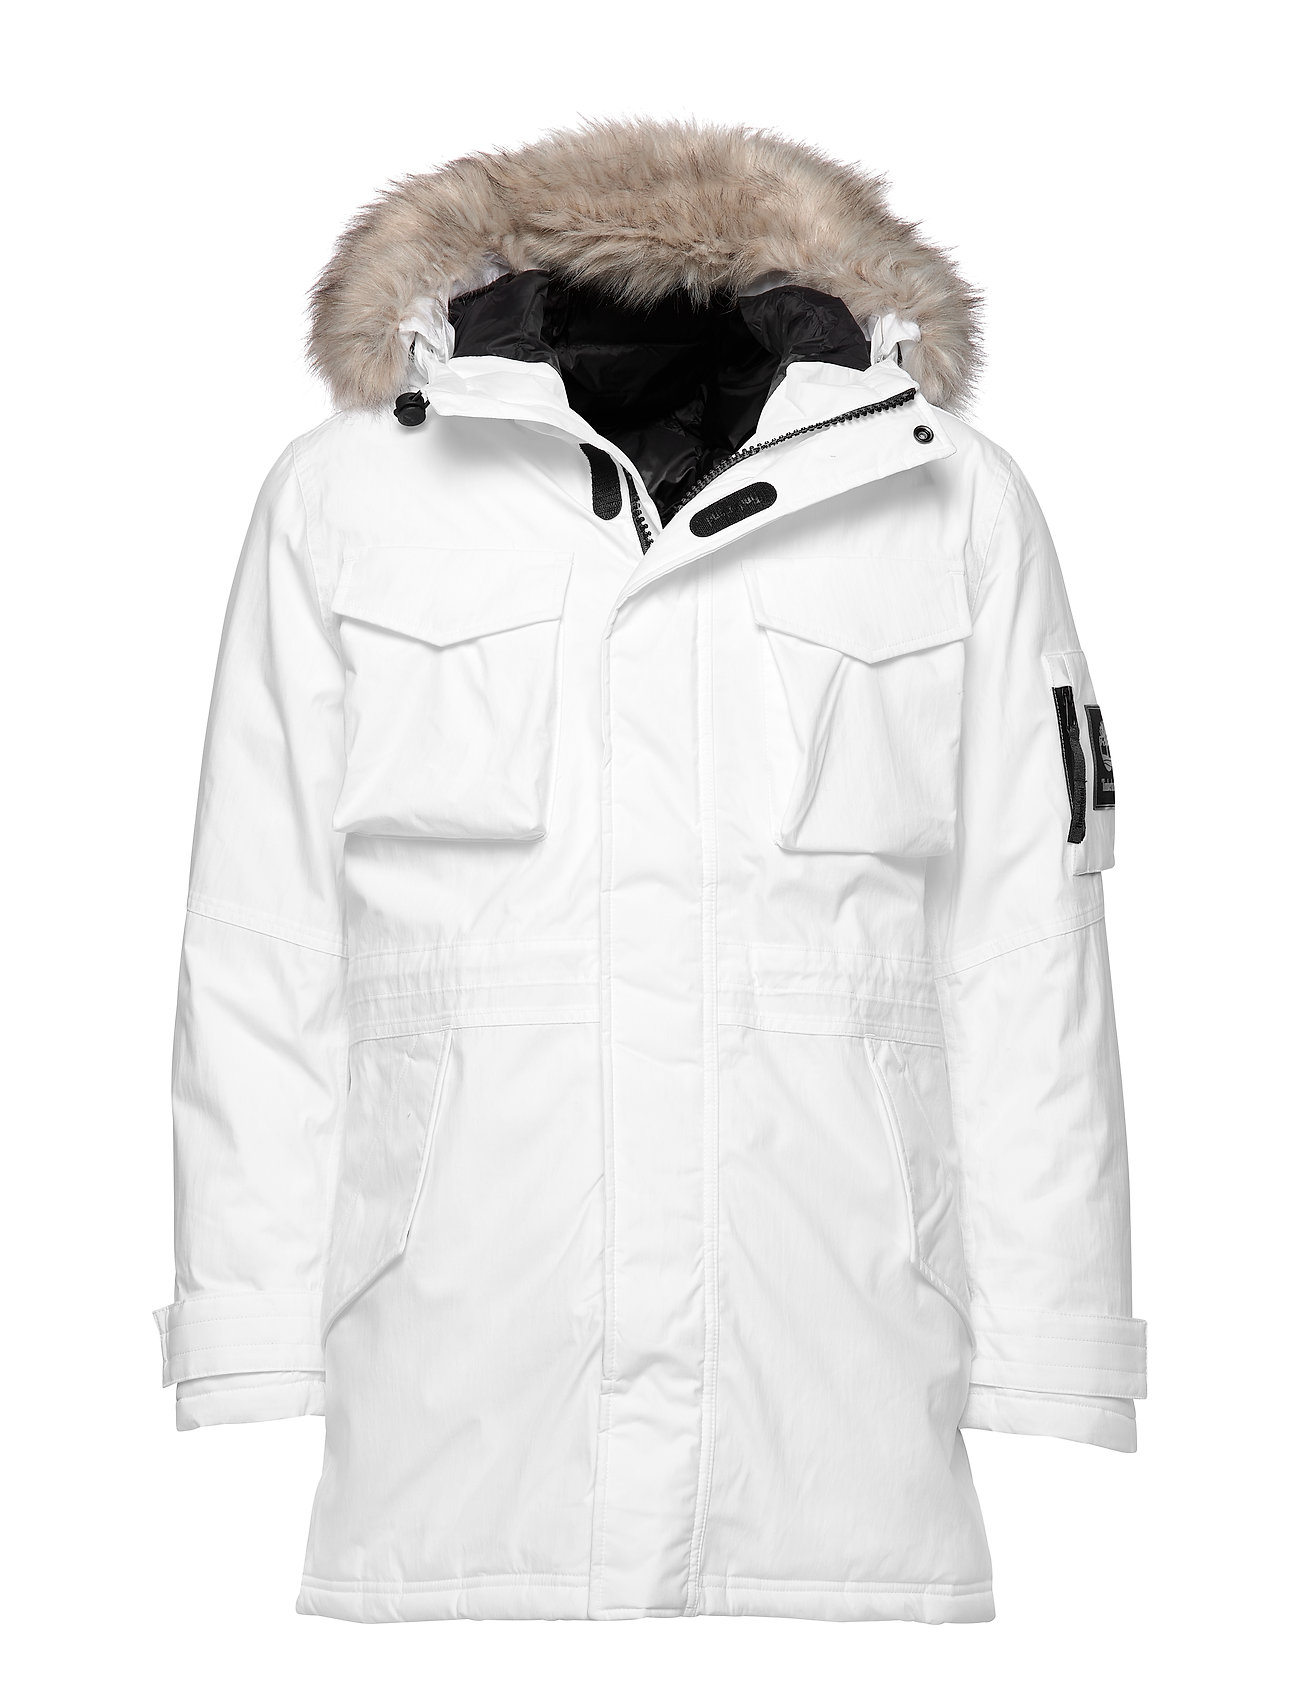 Timberland DV Nordic Edge Expedition Parka Jkt - WHITE